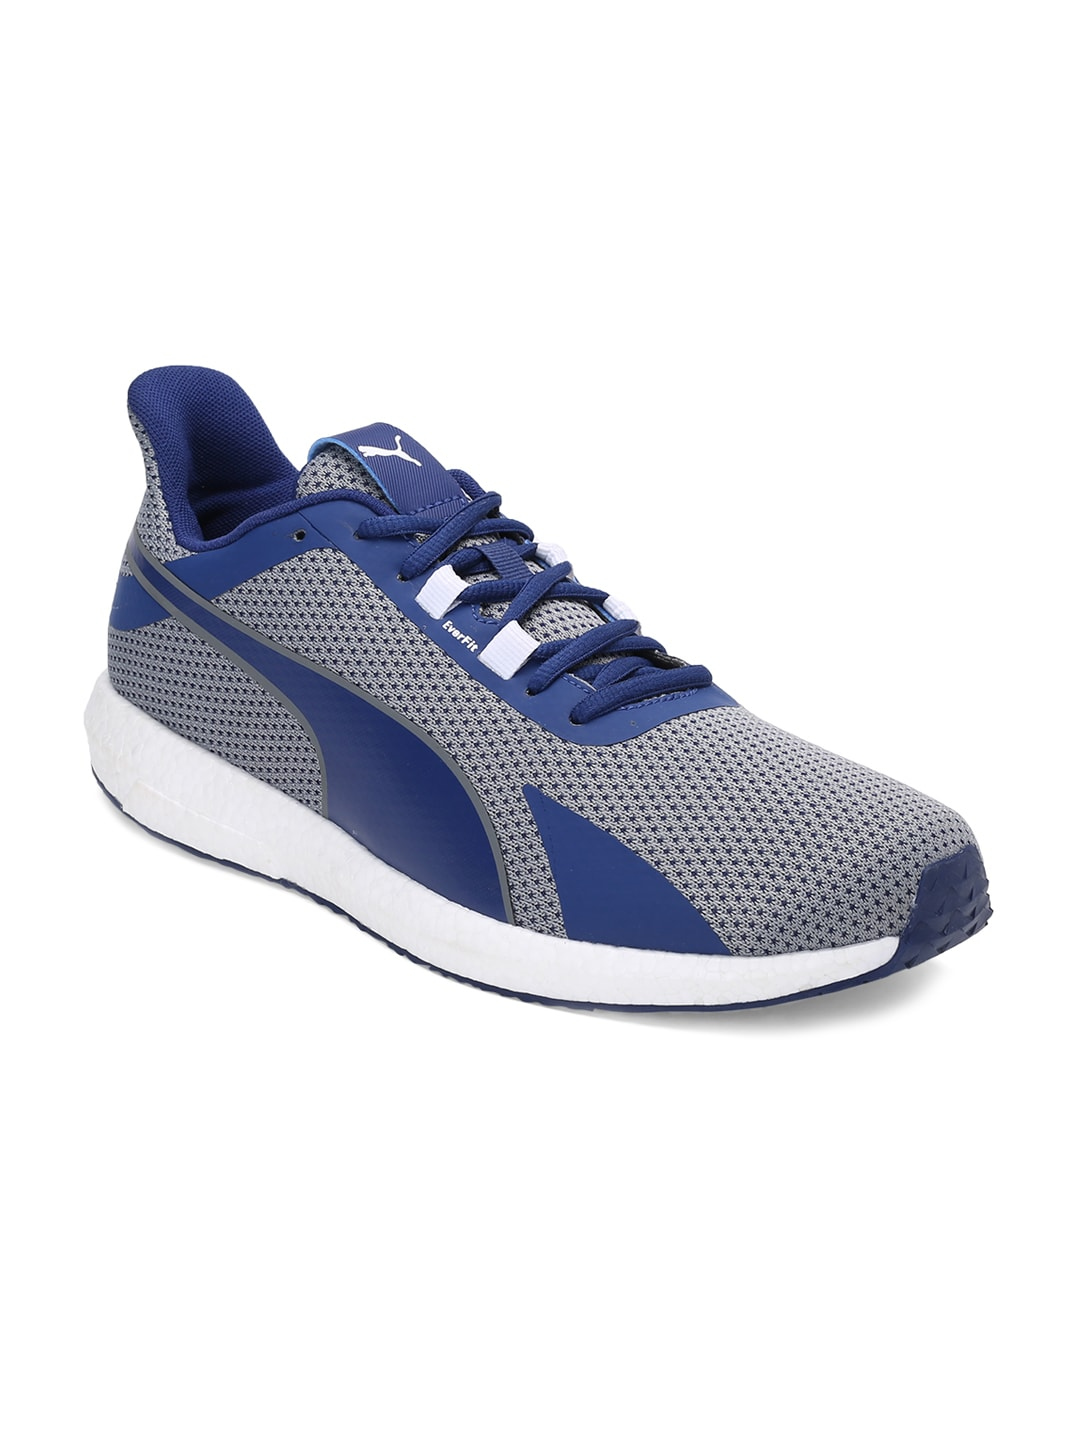 f3b857eadf4b69 Puma Men Blue Sports Shoes - Buy Puma Men Blue Sports Shoes online in India